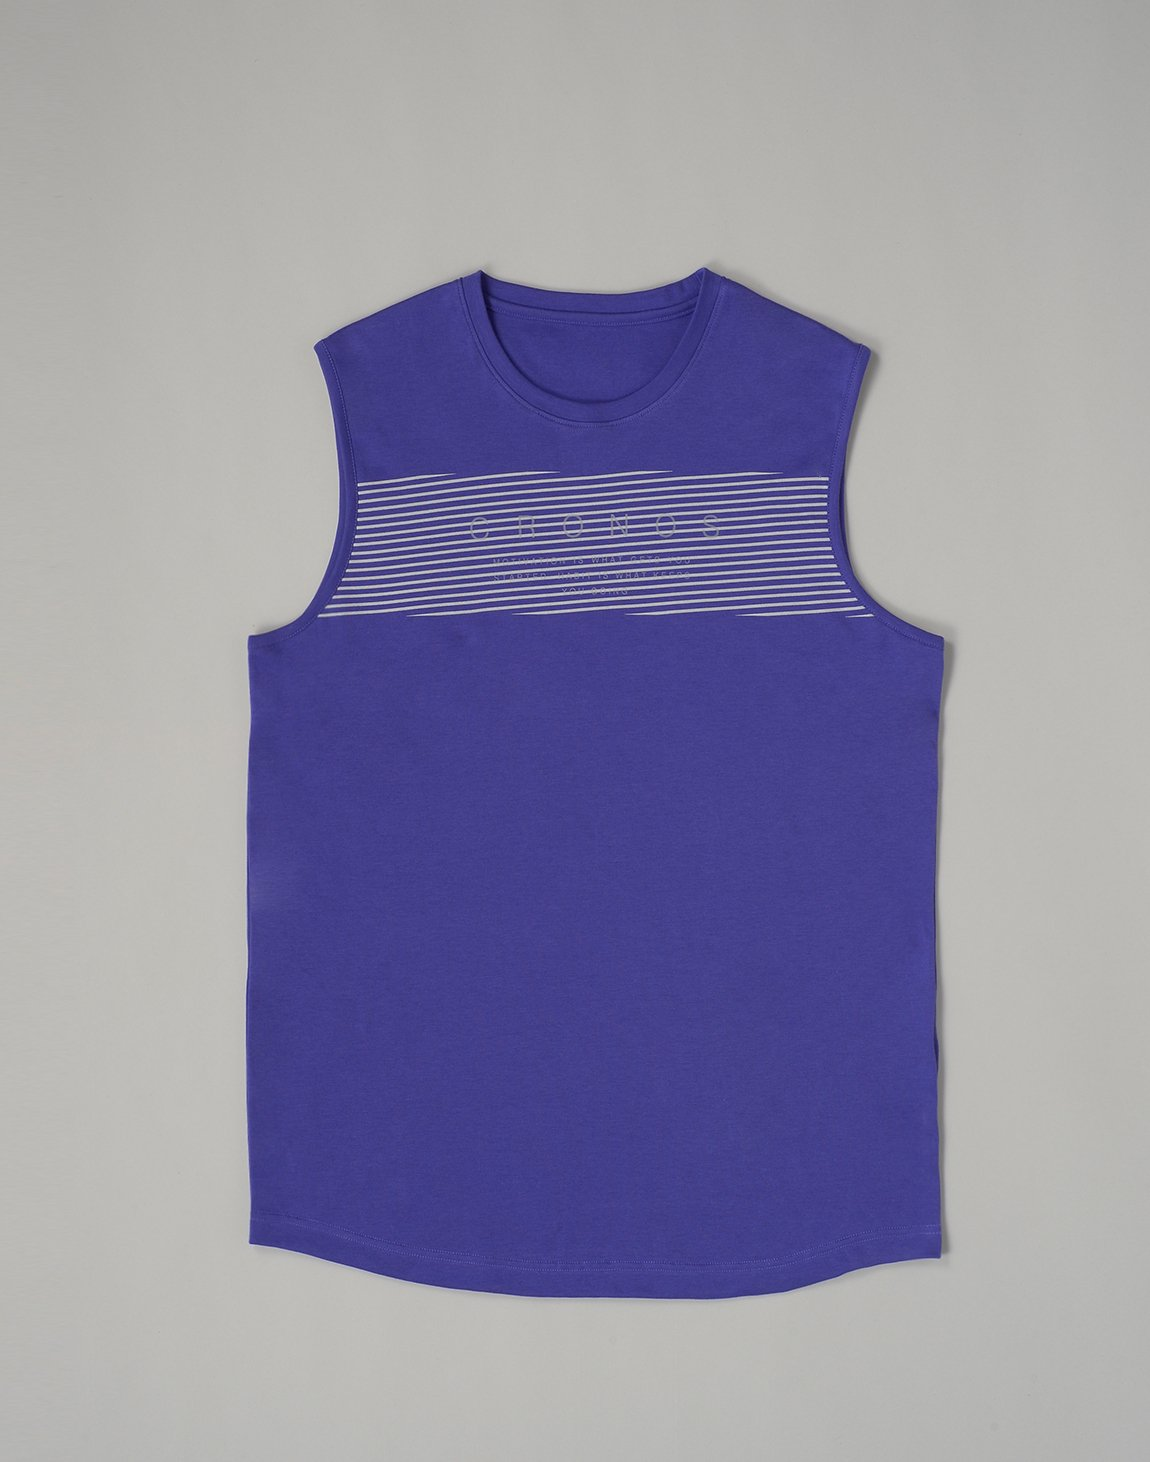 <img class='new_mark_img1' src='https://img.shop-pro.jp/img/new/icons1.gif' style='border:none;display:inline;margin:0px;padding:0px;width:auto;' />CRONOS PARALLEL LINE LOGO  MUSLE TOP【PURPLE】